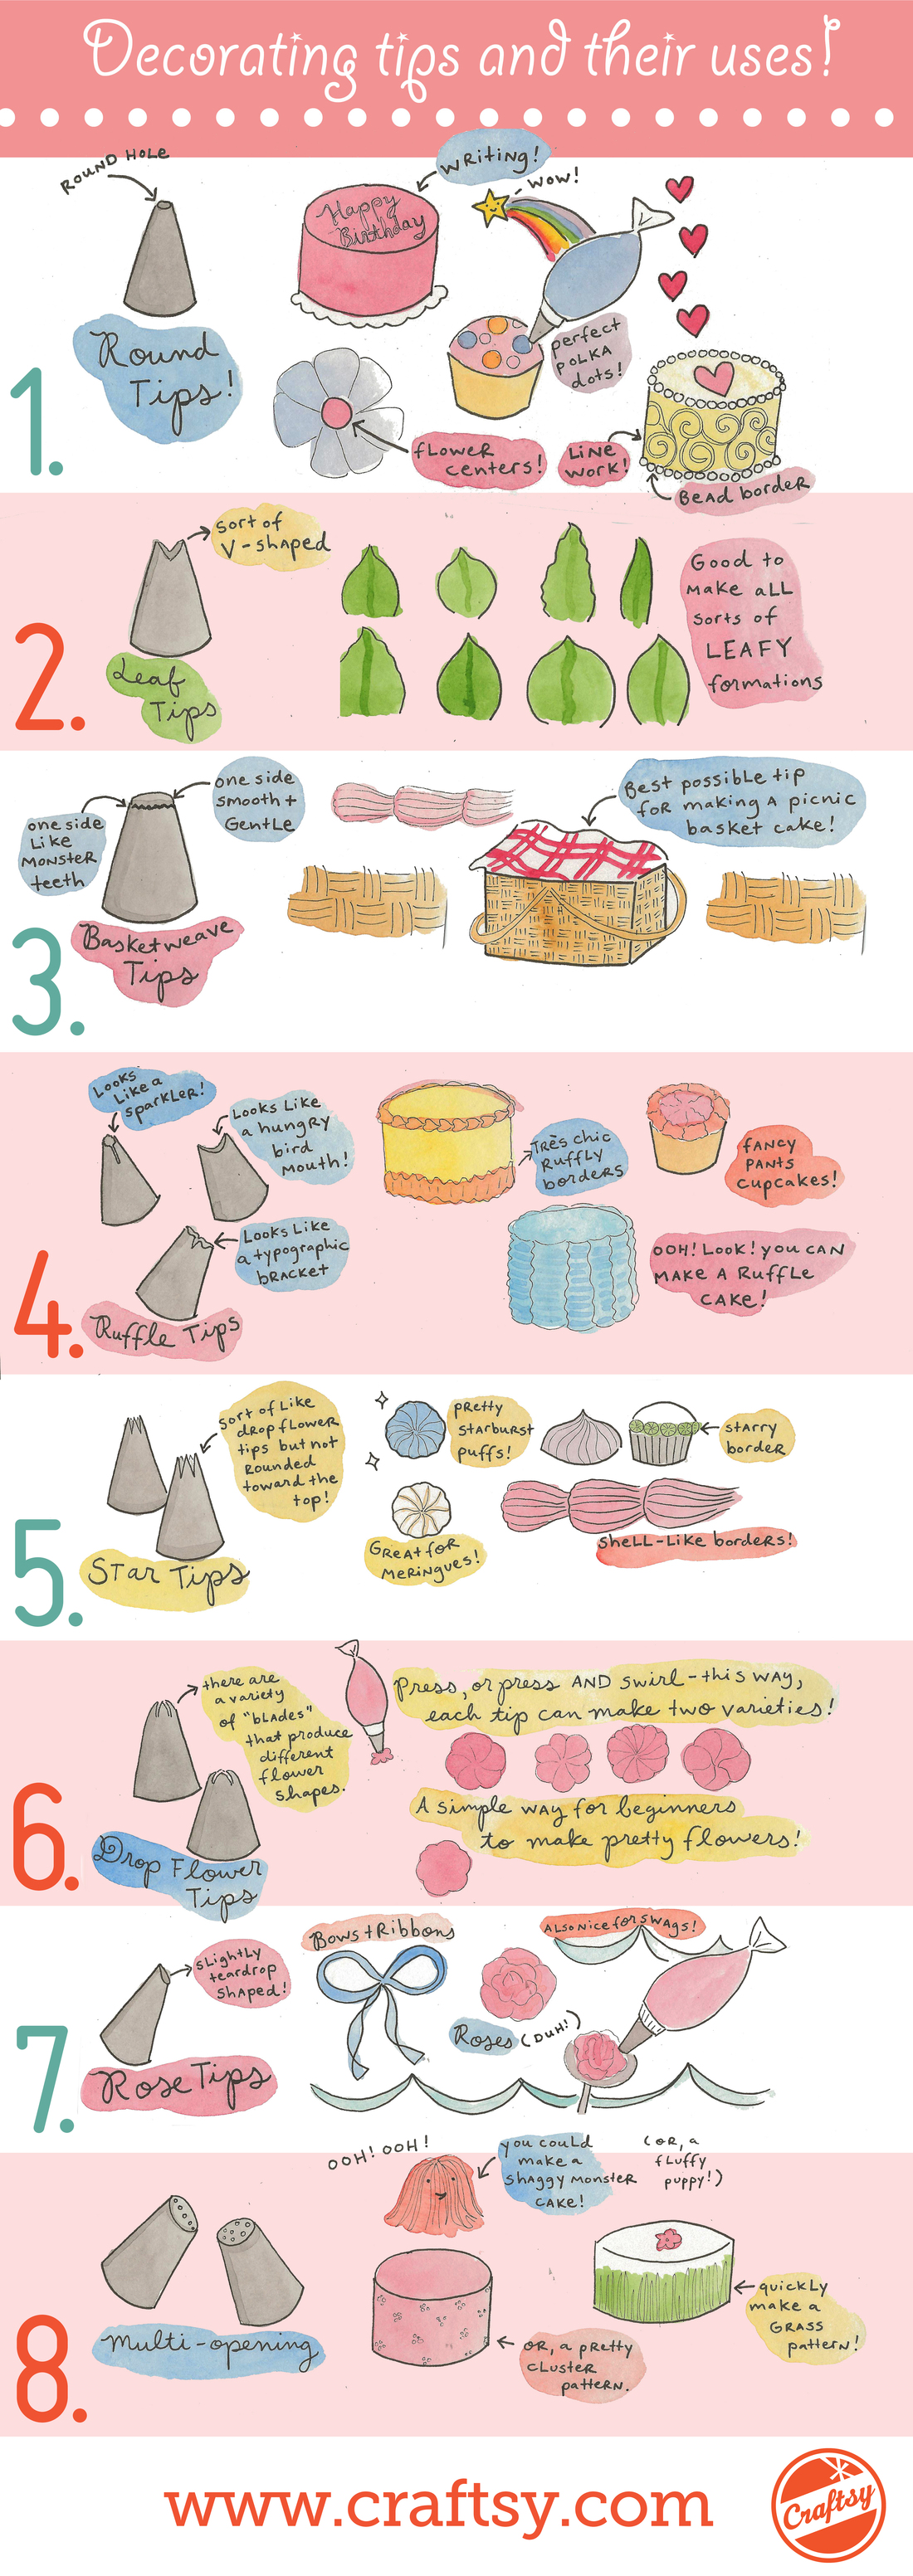 Cake Decorating Tips and Their Uses: Infographic